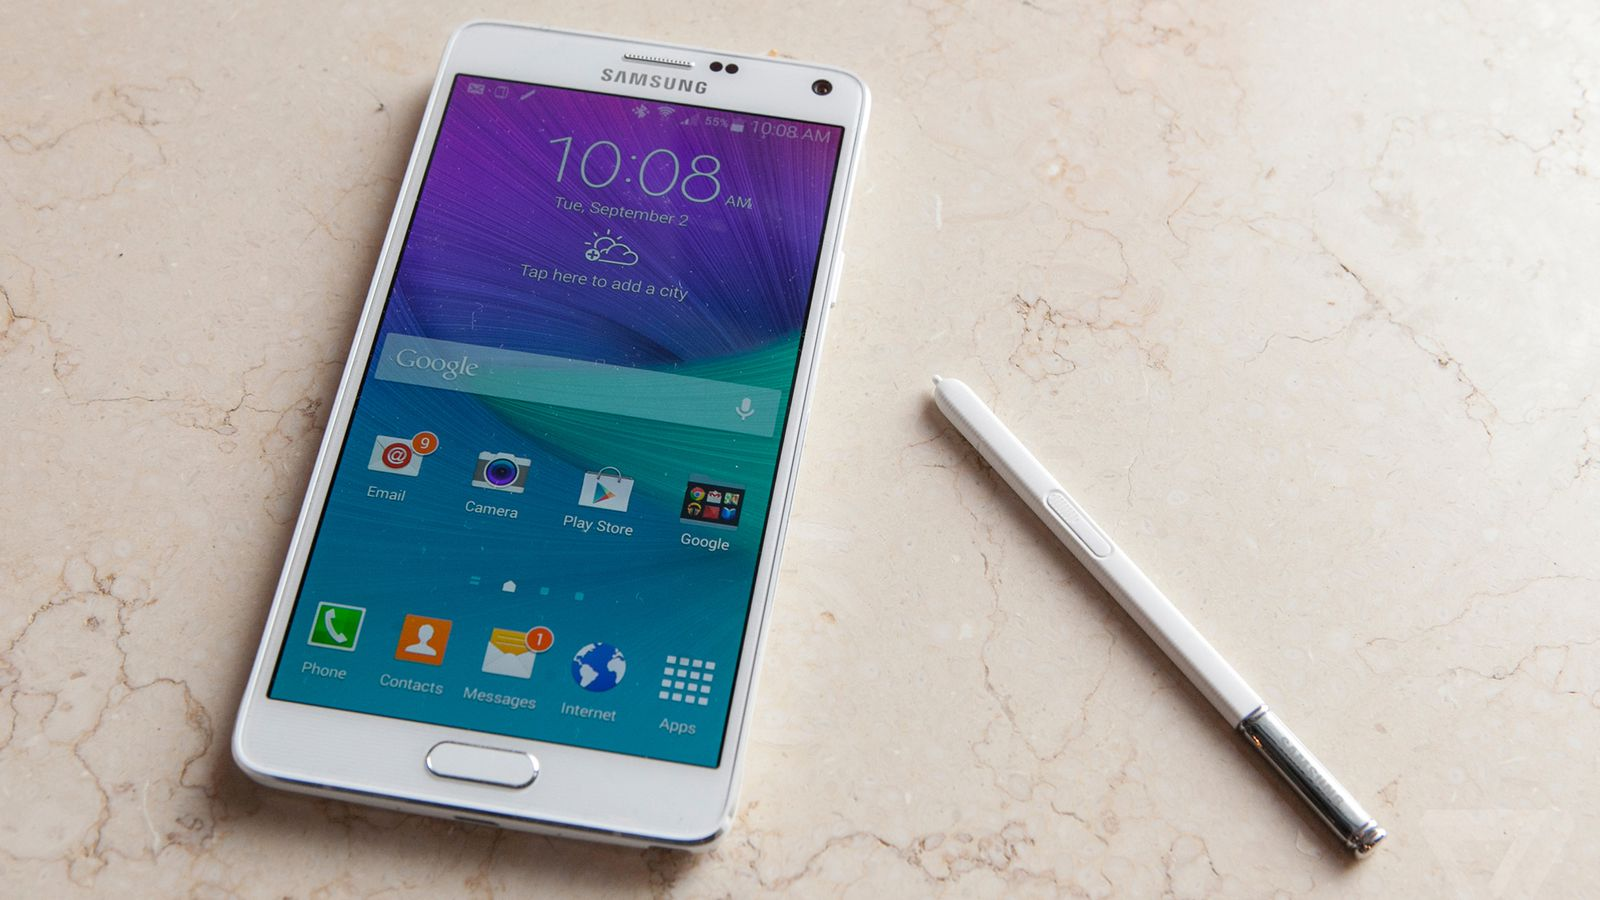 Samsung's Galaxy Note 4 goes on sale in the UK on October ...